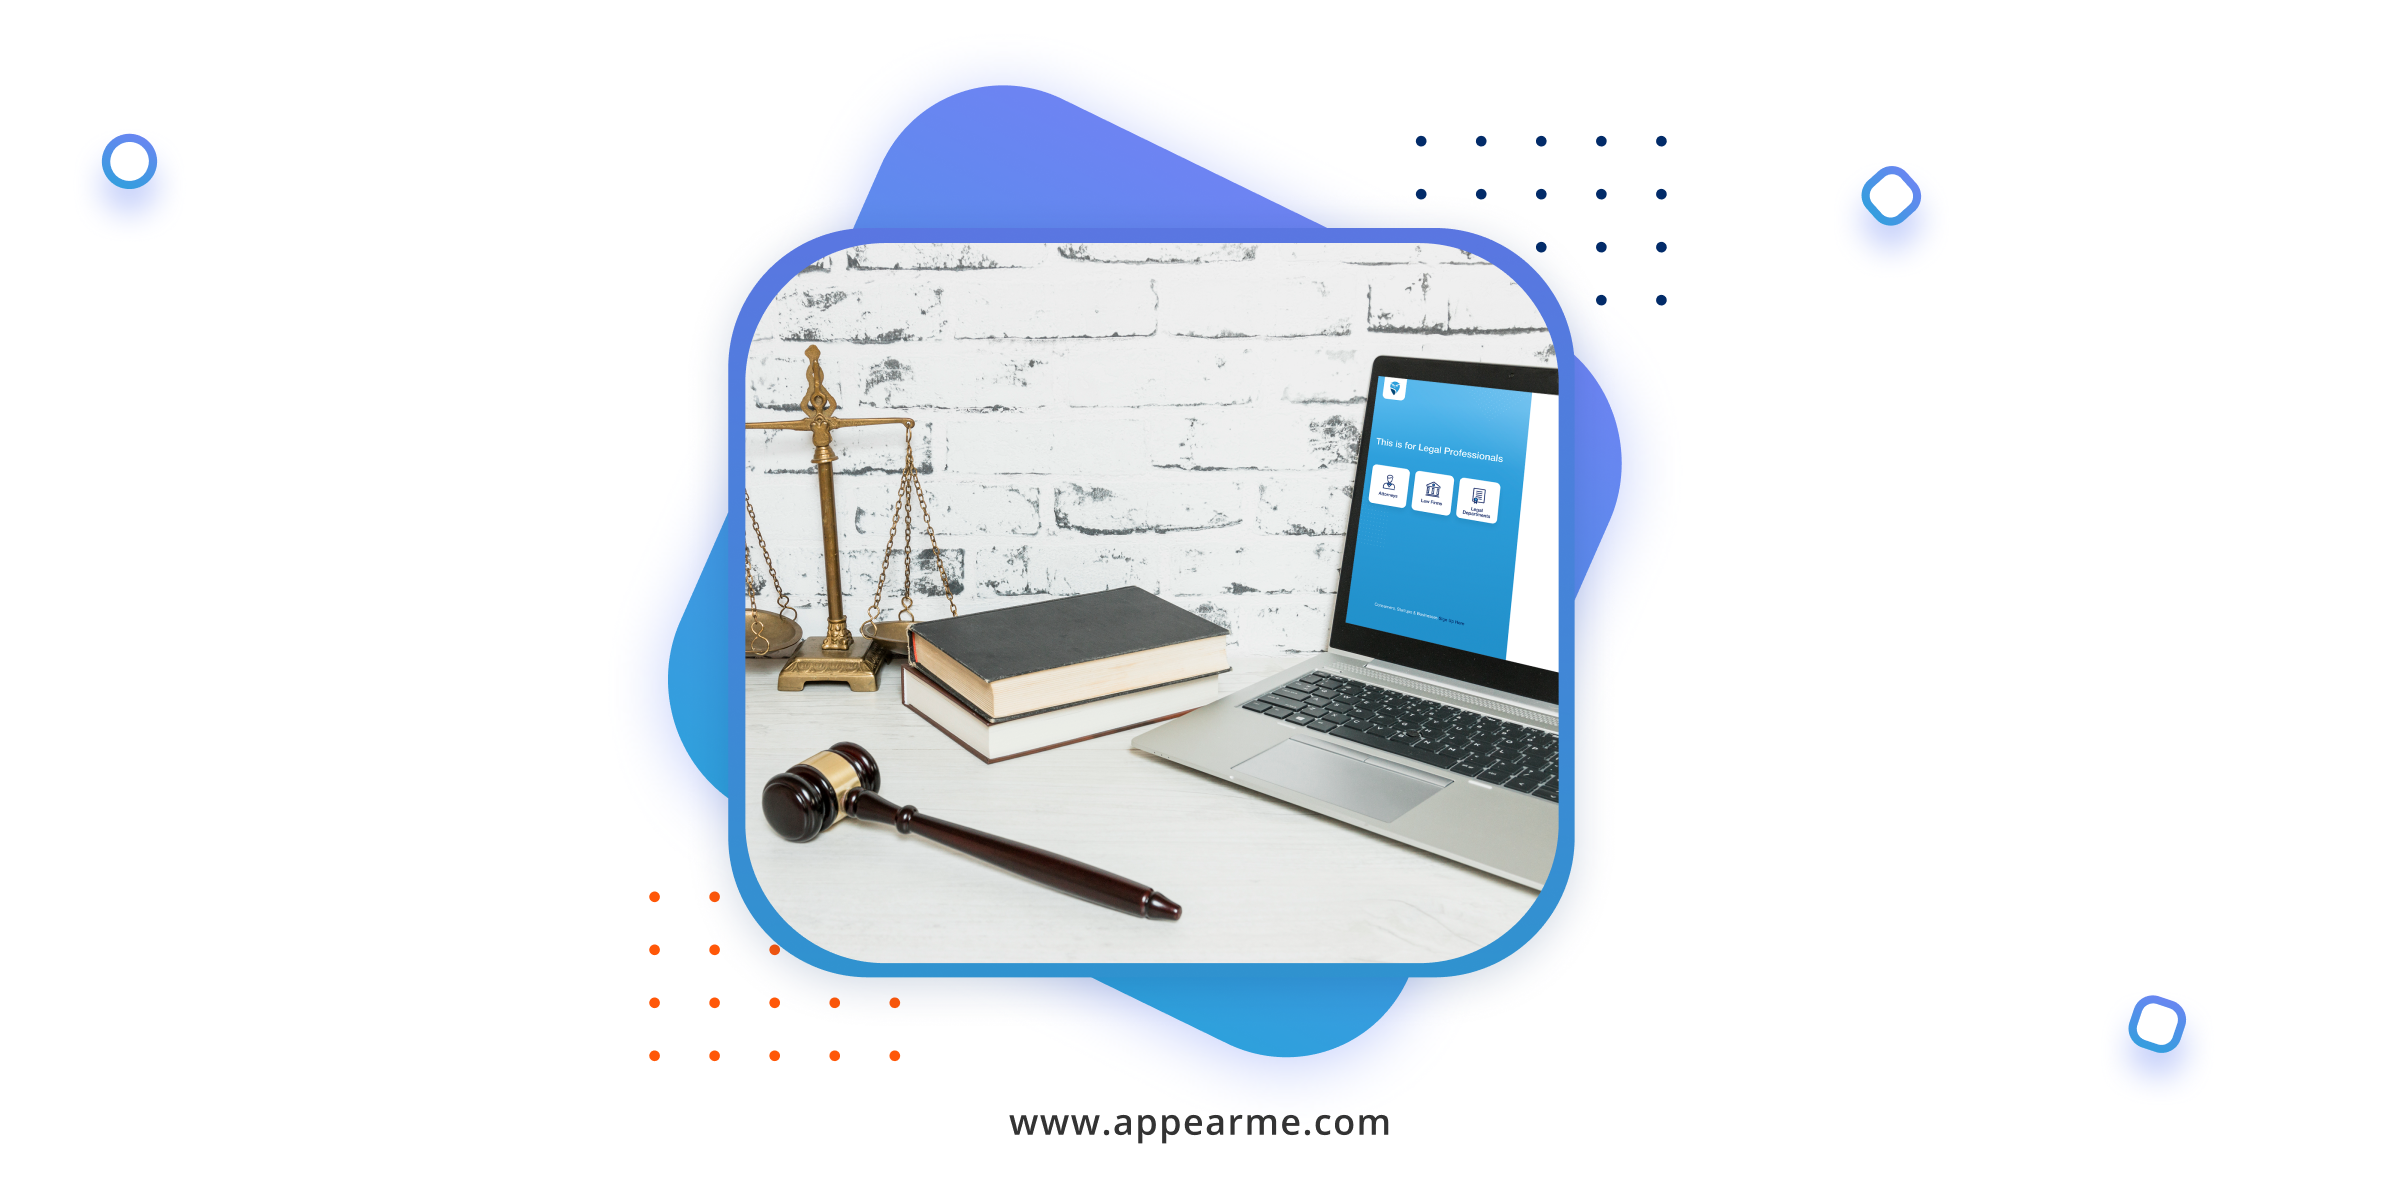 AppearMe: A New Approach to Finding Freelance Legal Work